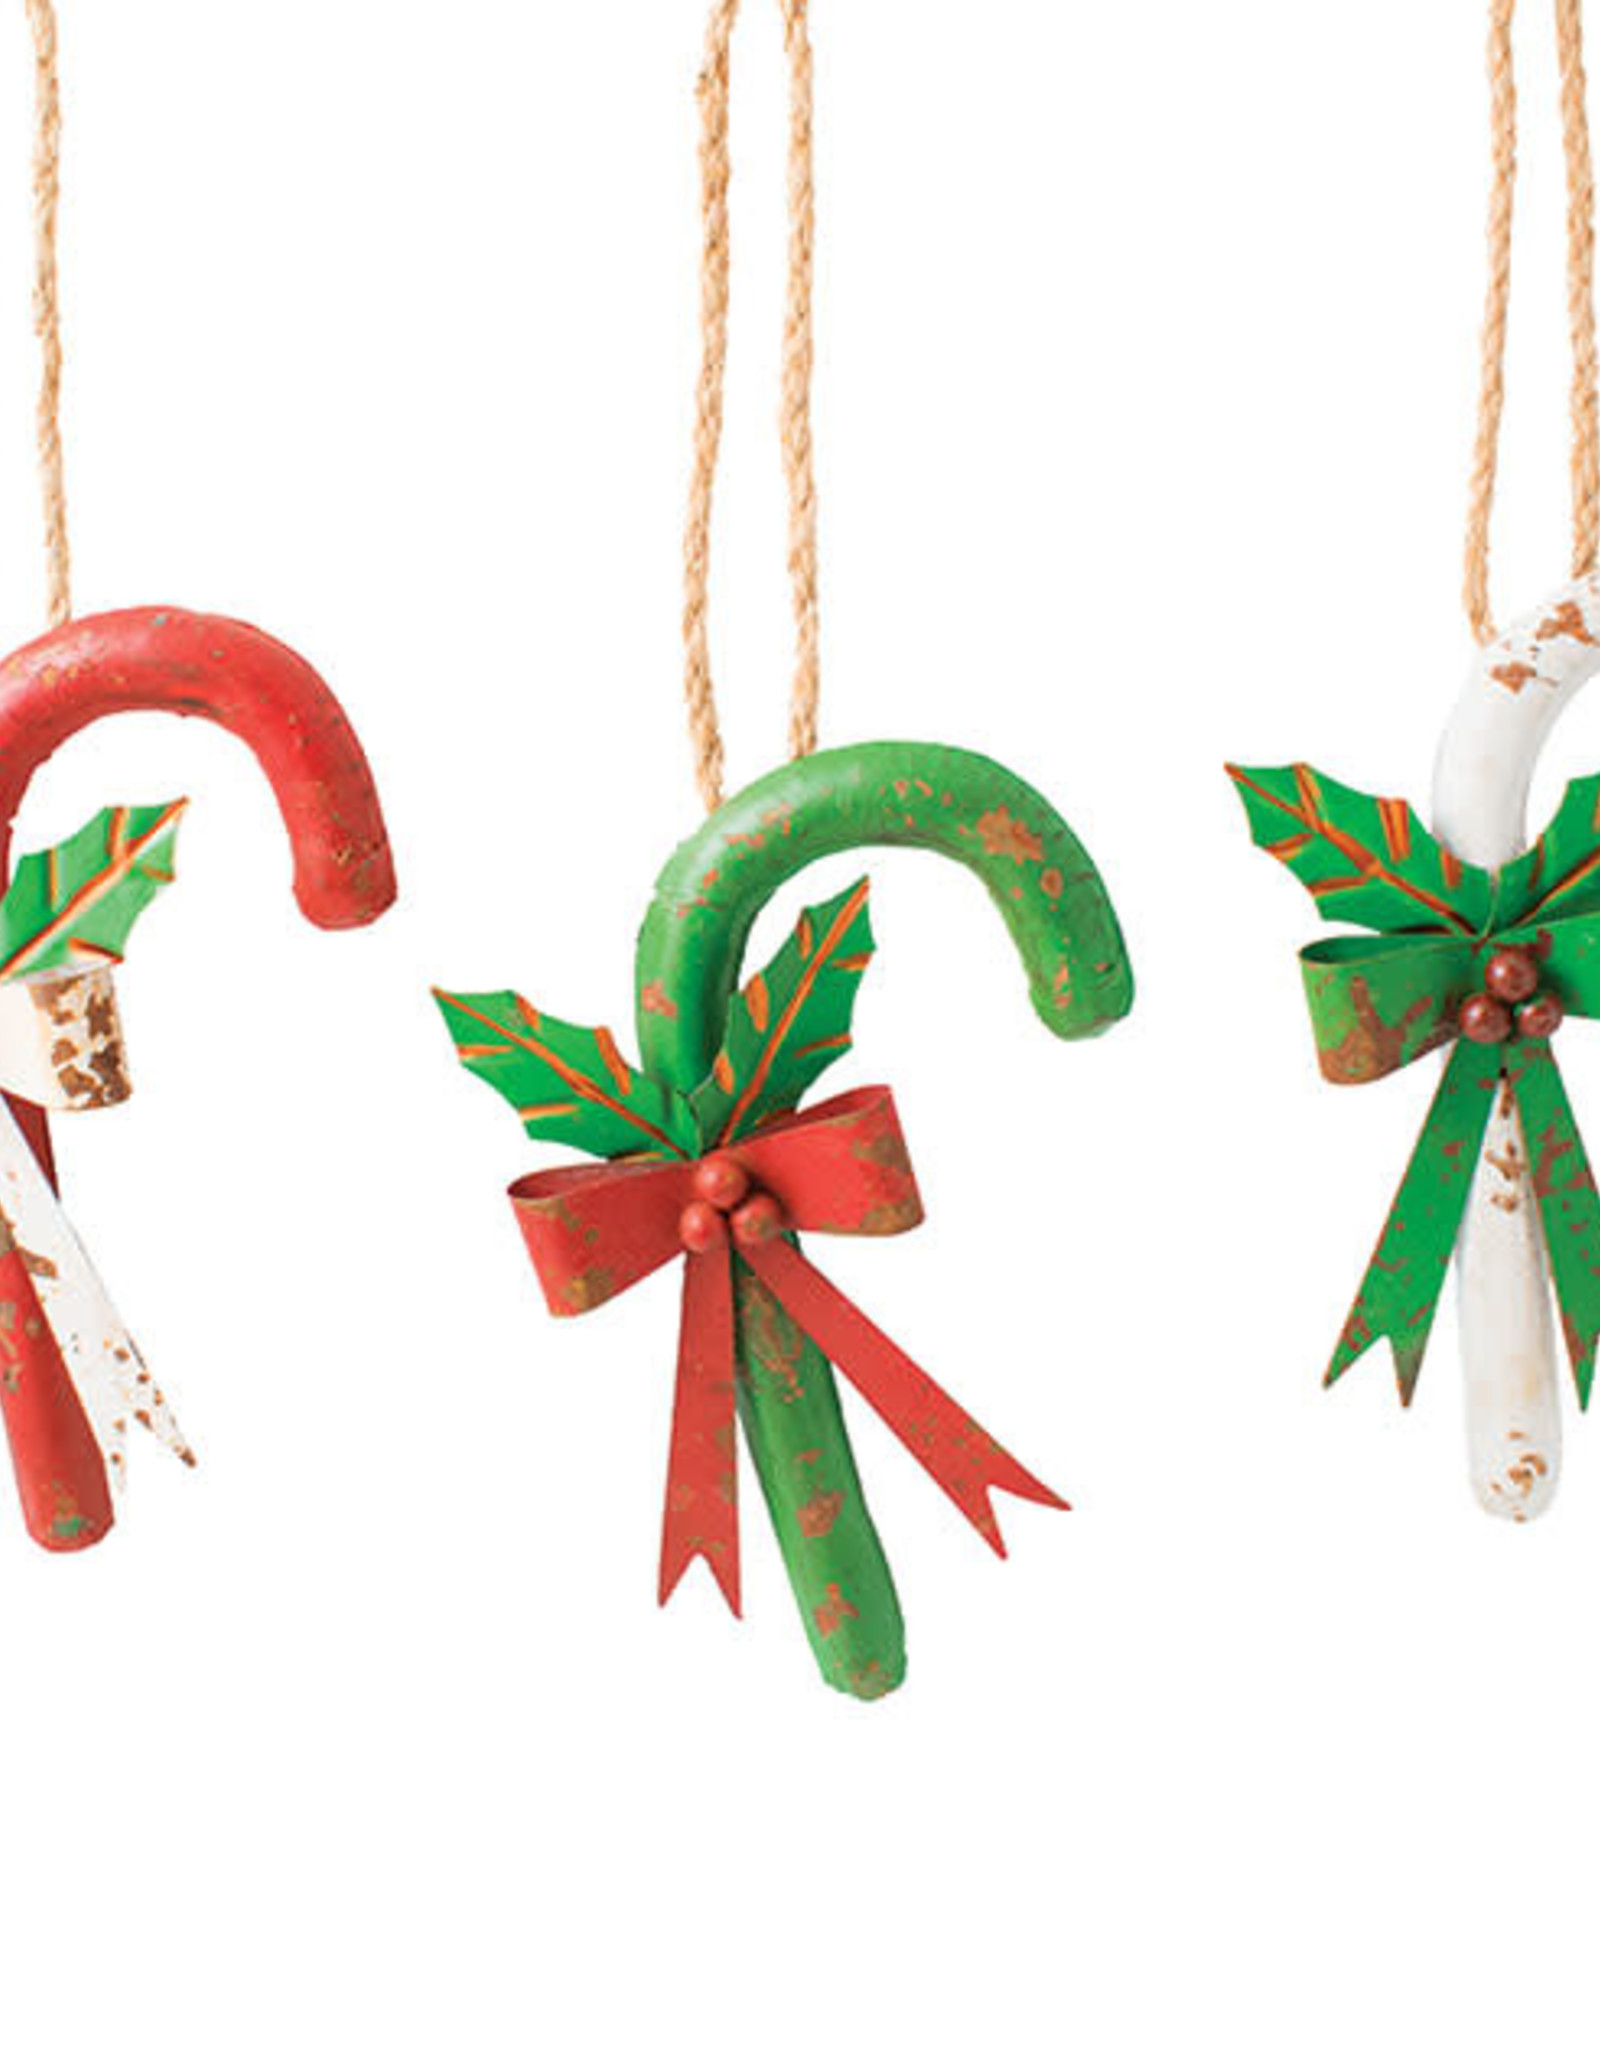 Wink Distressed Candy Cane